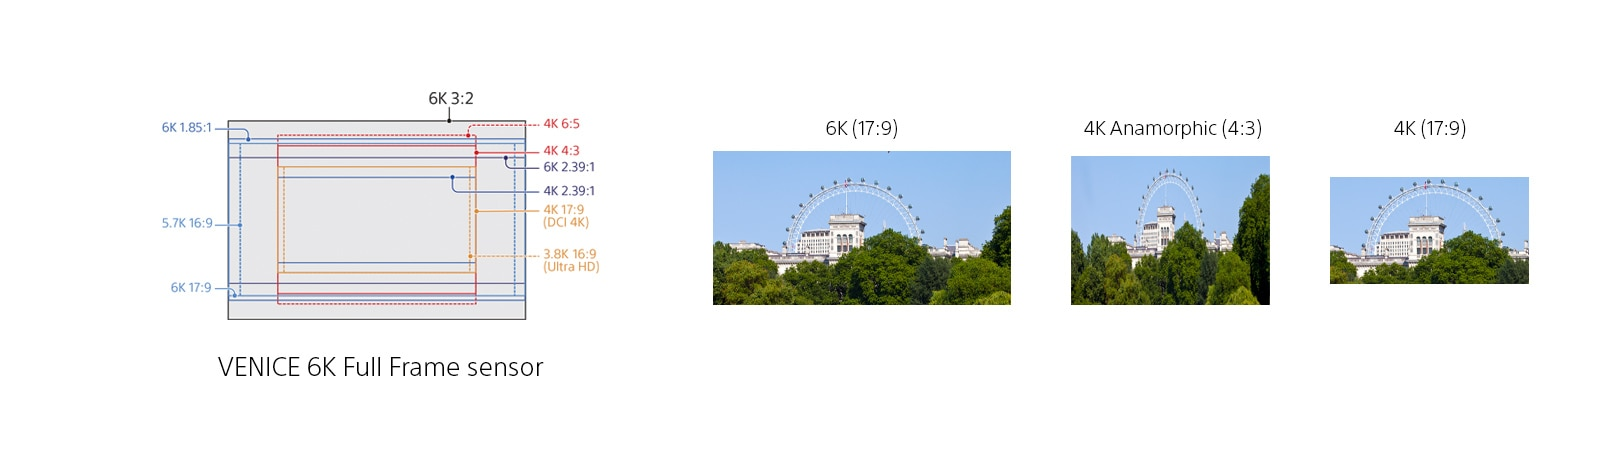 Diagram showing a variety of different image sizes that can be shot using a full-frame sensor.